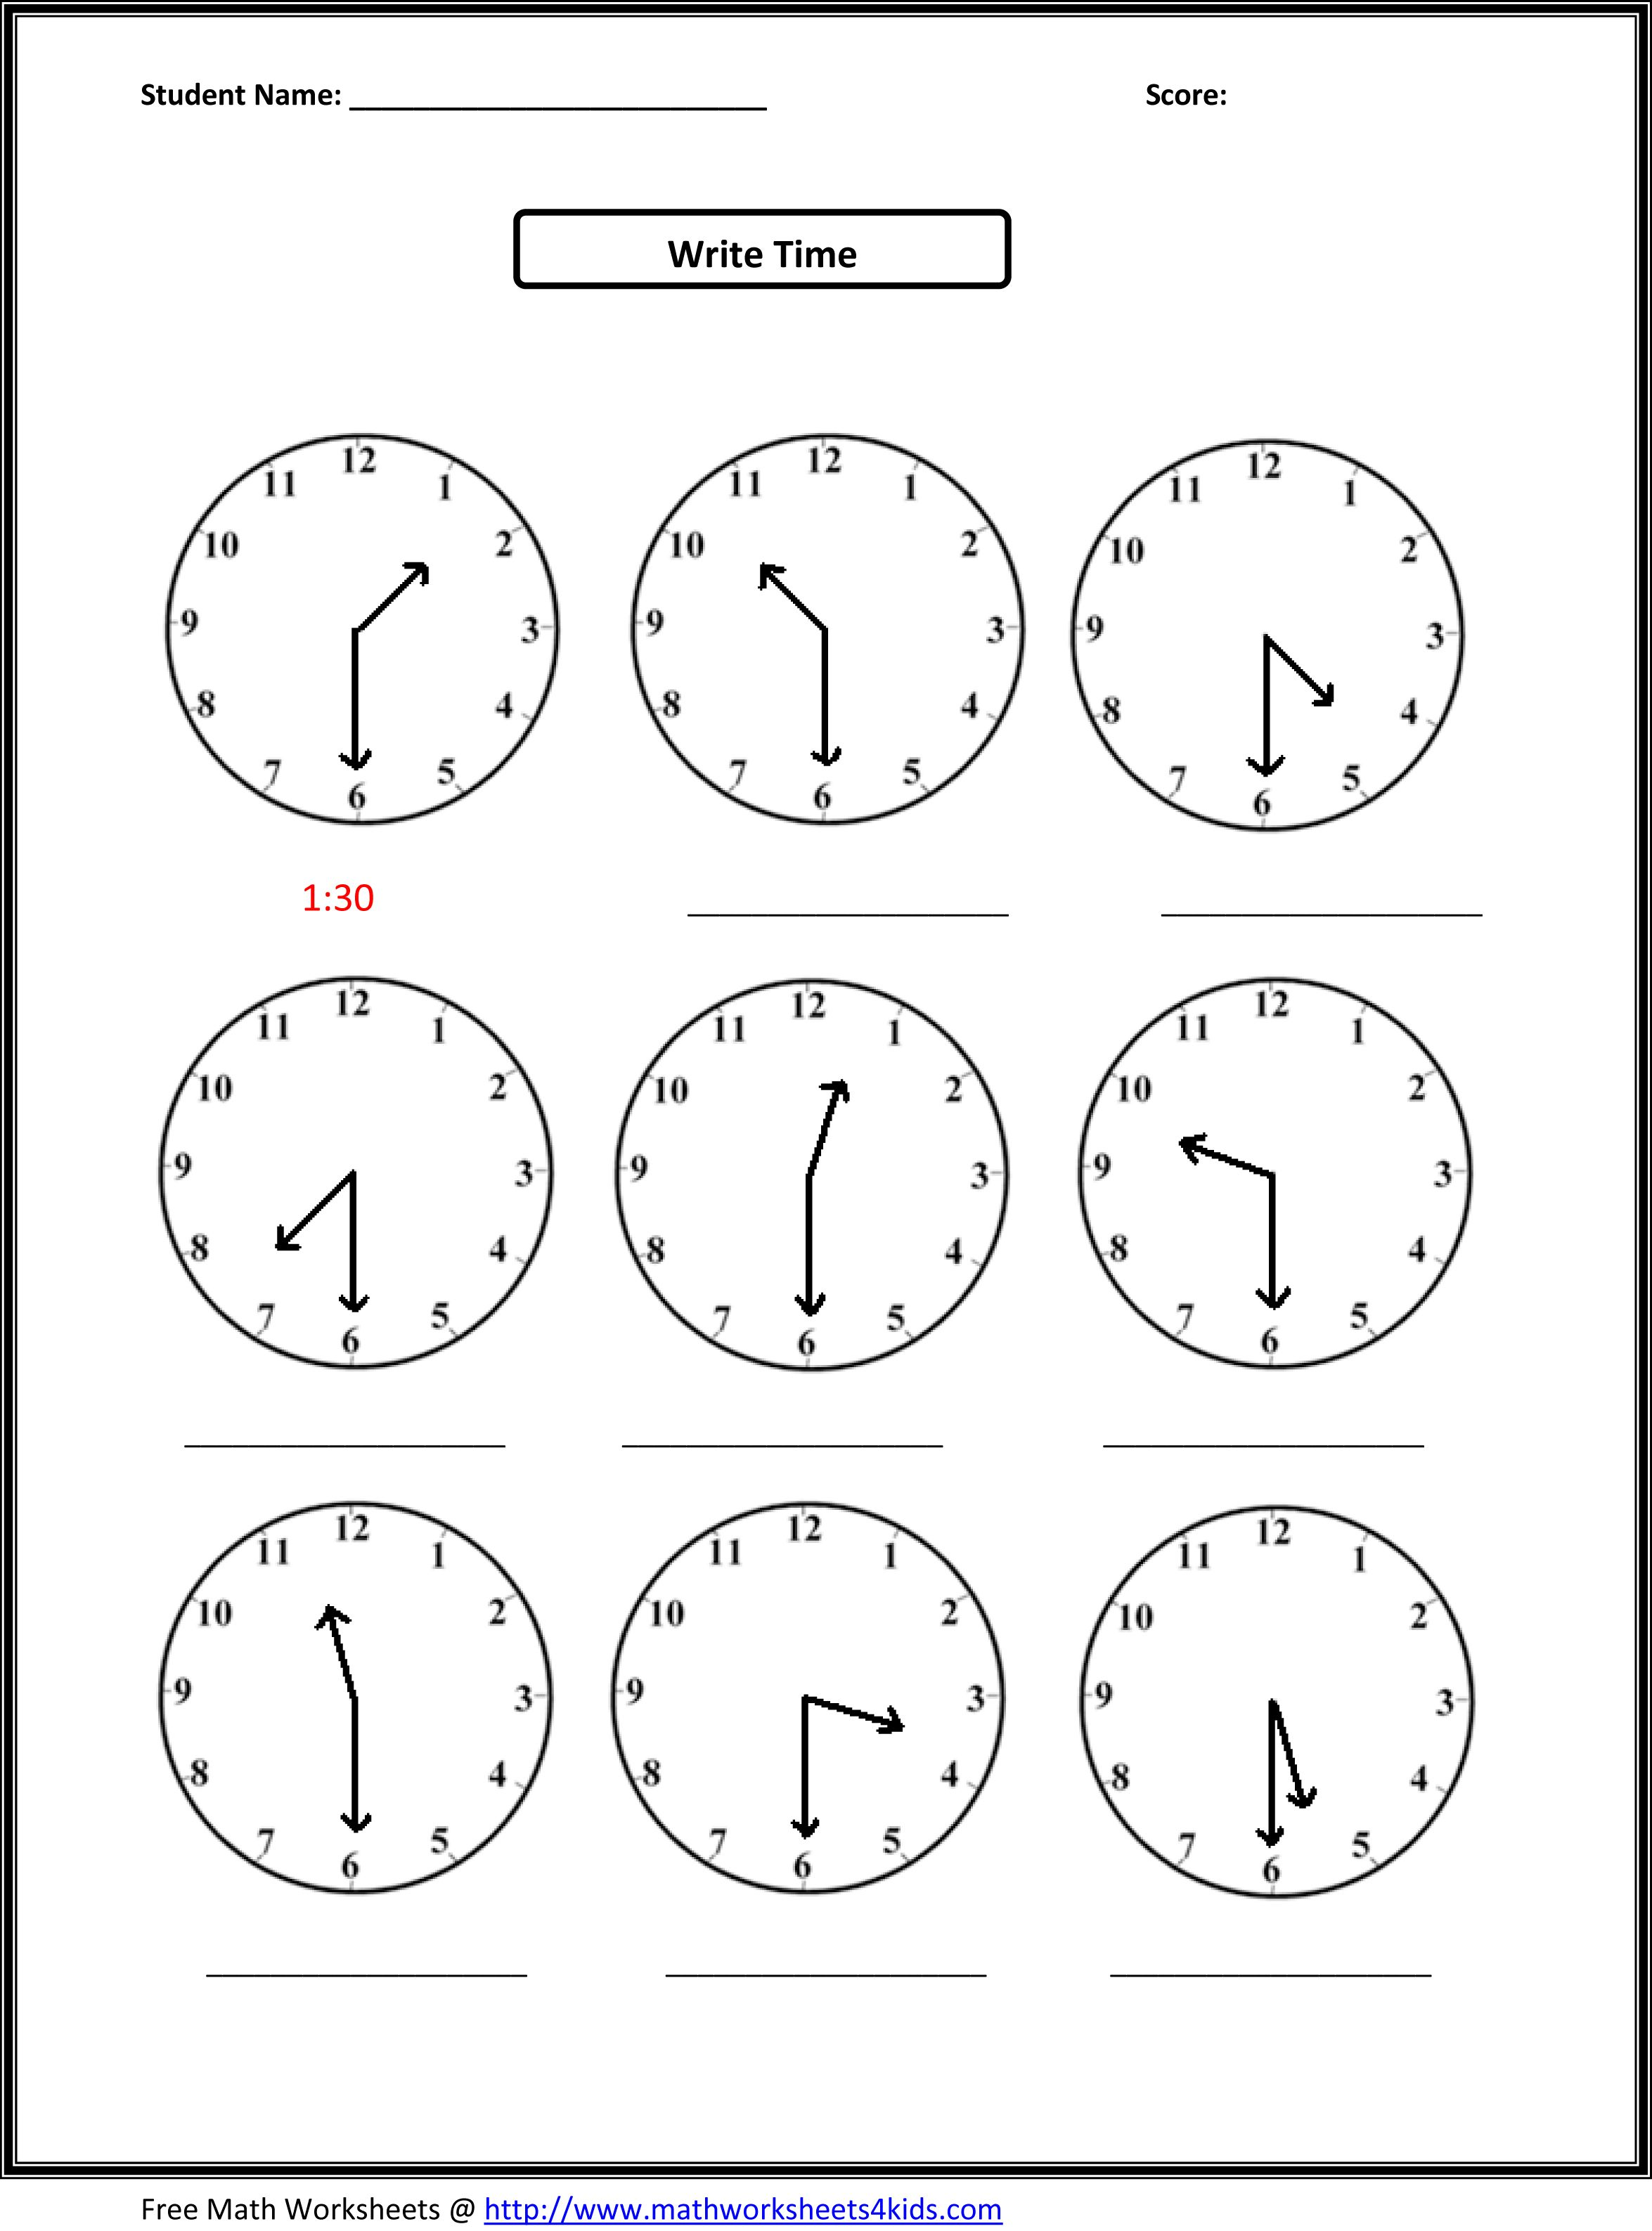 Weirdmailus  Pleasing Worksheet On Time For Grade   Reocurent With Exquisite Free Printable Telling Time Worksheets Nd Grade  Reocurent With Delectable Maths Worksheets For Grade  Word Problems Also Behaviour Worksheets In Addition Measurement Capacity Worksheets And Orthographic Drawings Worksheets As Well As Henry Viii Family Tree Worksheet Additionally Basic Operations With Fractions Worksheet From Reocurentcom With Weirdmailus  Exquisite Worksheet On Time For Grade   Reocurent With Delectable Free Printable Telling Time Worksheets Nd Grade  Reocurent And Pleasing Maths Worksheets For Grade  Word Problems Also Behaviour Worksheets In Addition Measurement Capacity Worksheets From Reocurentcom